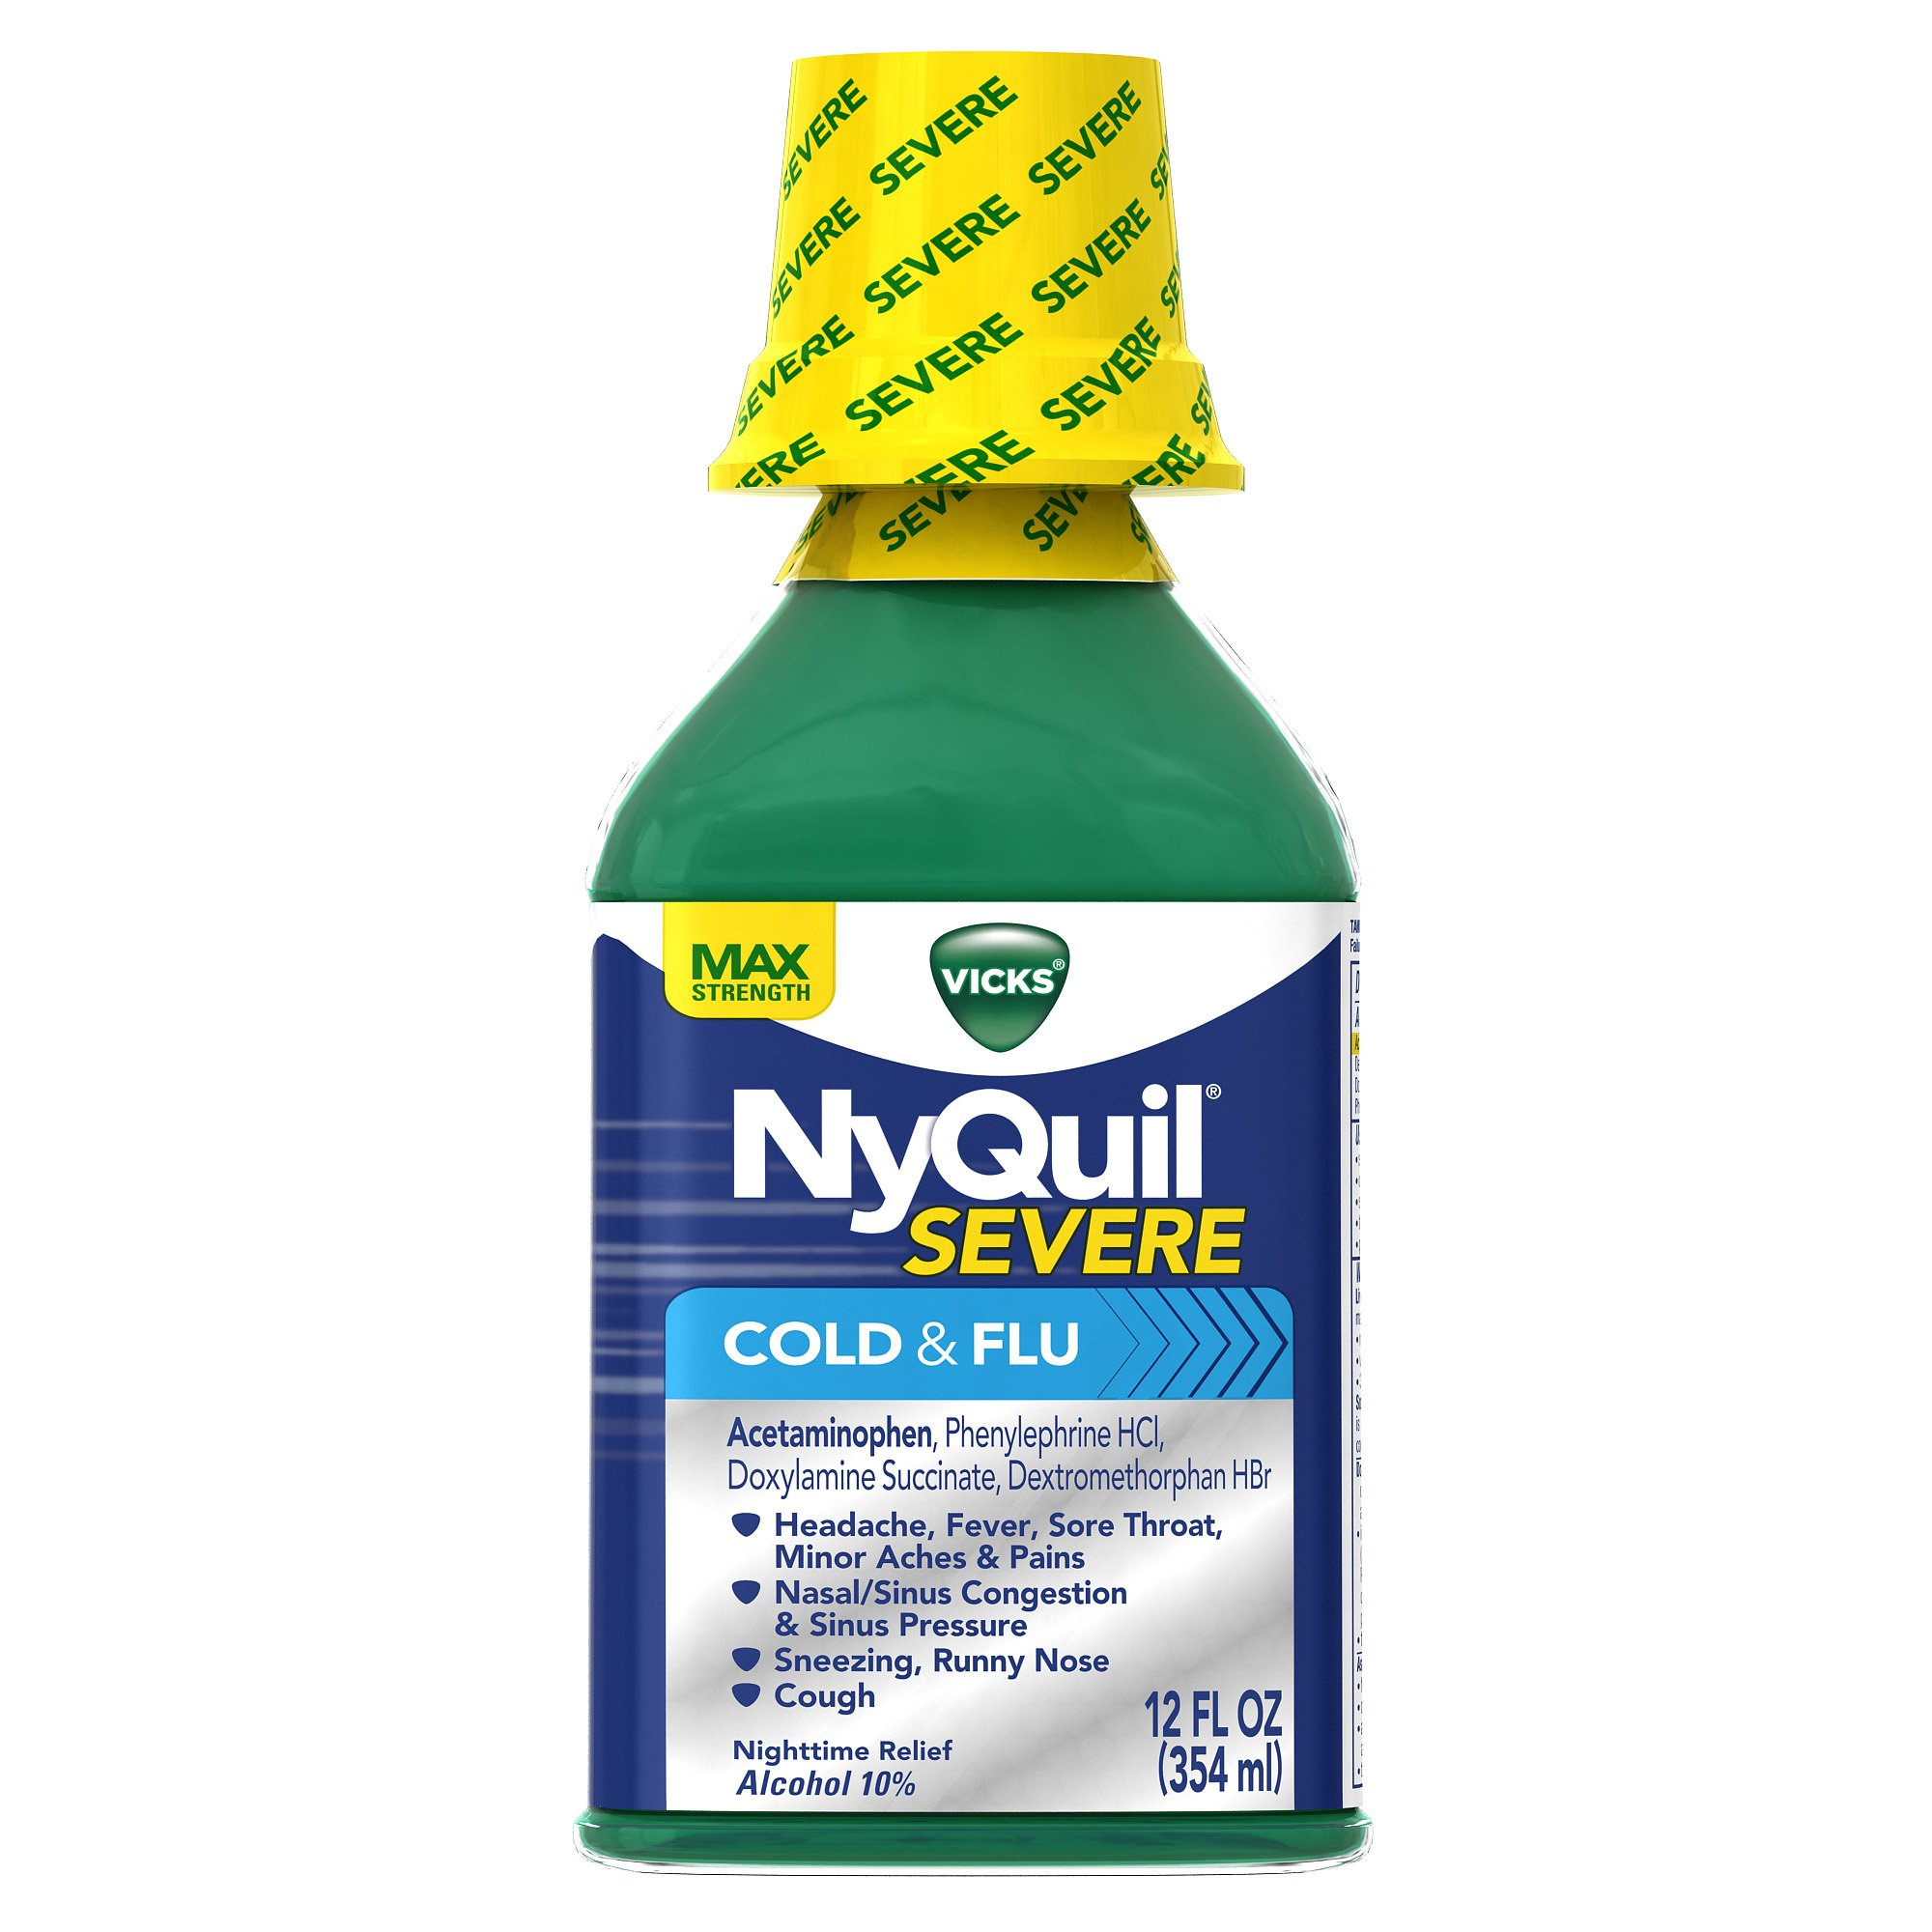 Vicks NyQuil Severe Cold & Flu Relief Original Flavor Liquid 12 Fl Oz (Pack of 6) by Vicks